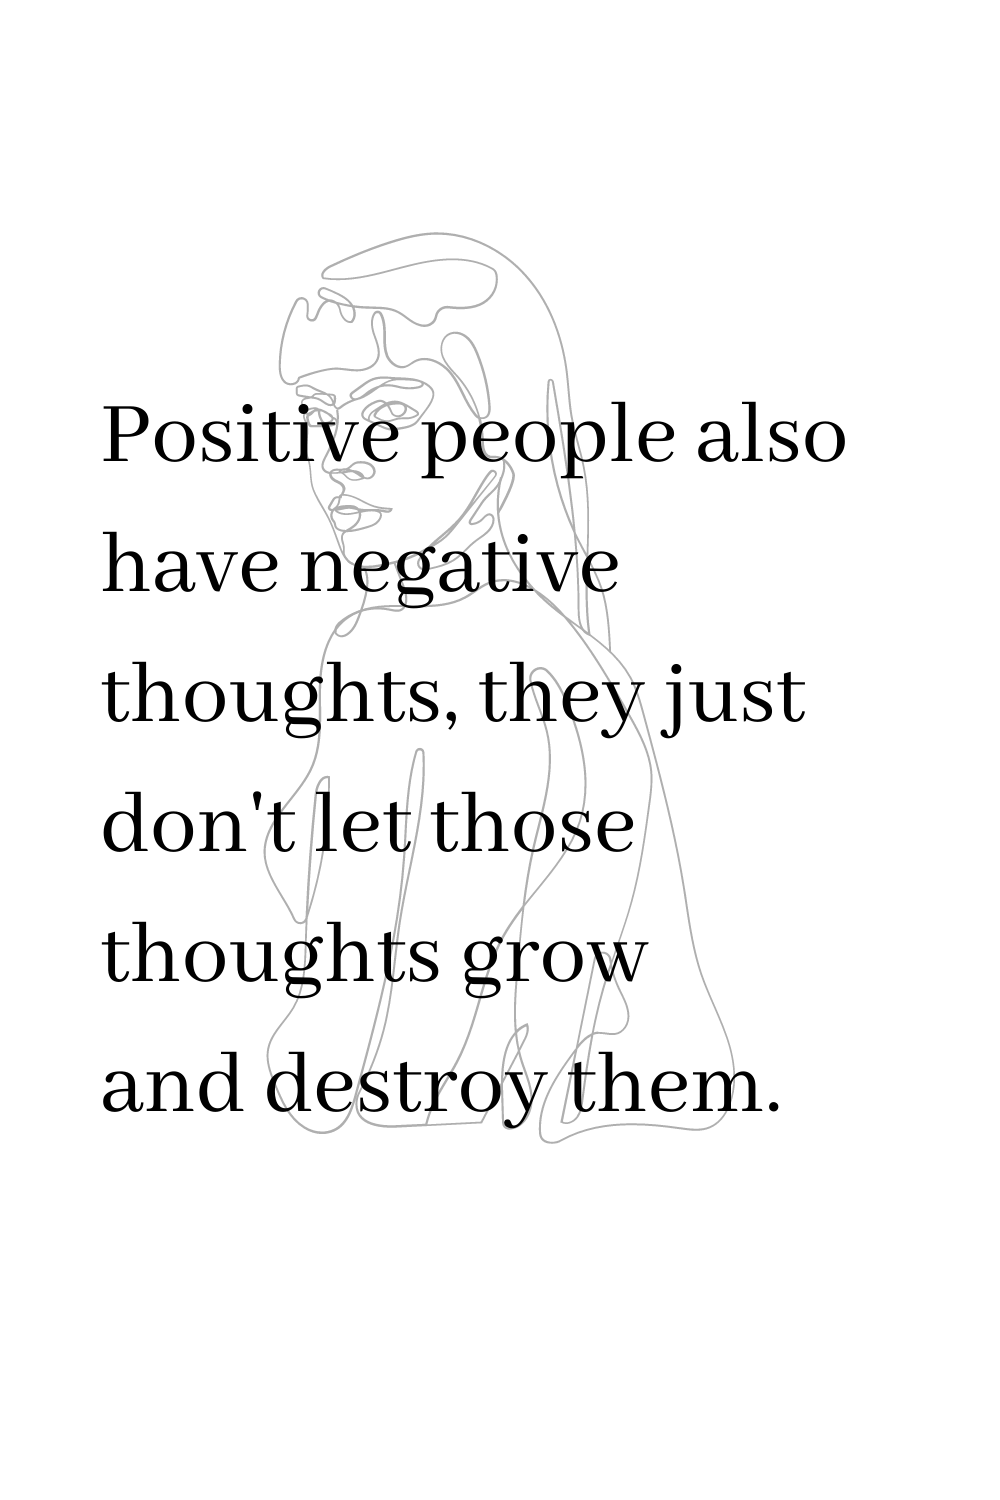 Positive people also have negative thoughts, they just don't let those thoughts grow and destroy them.